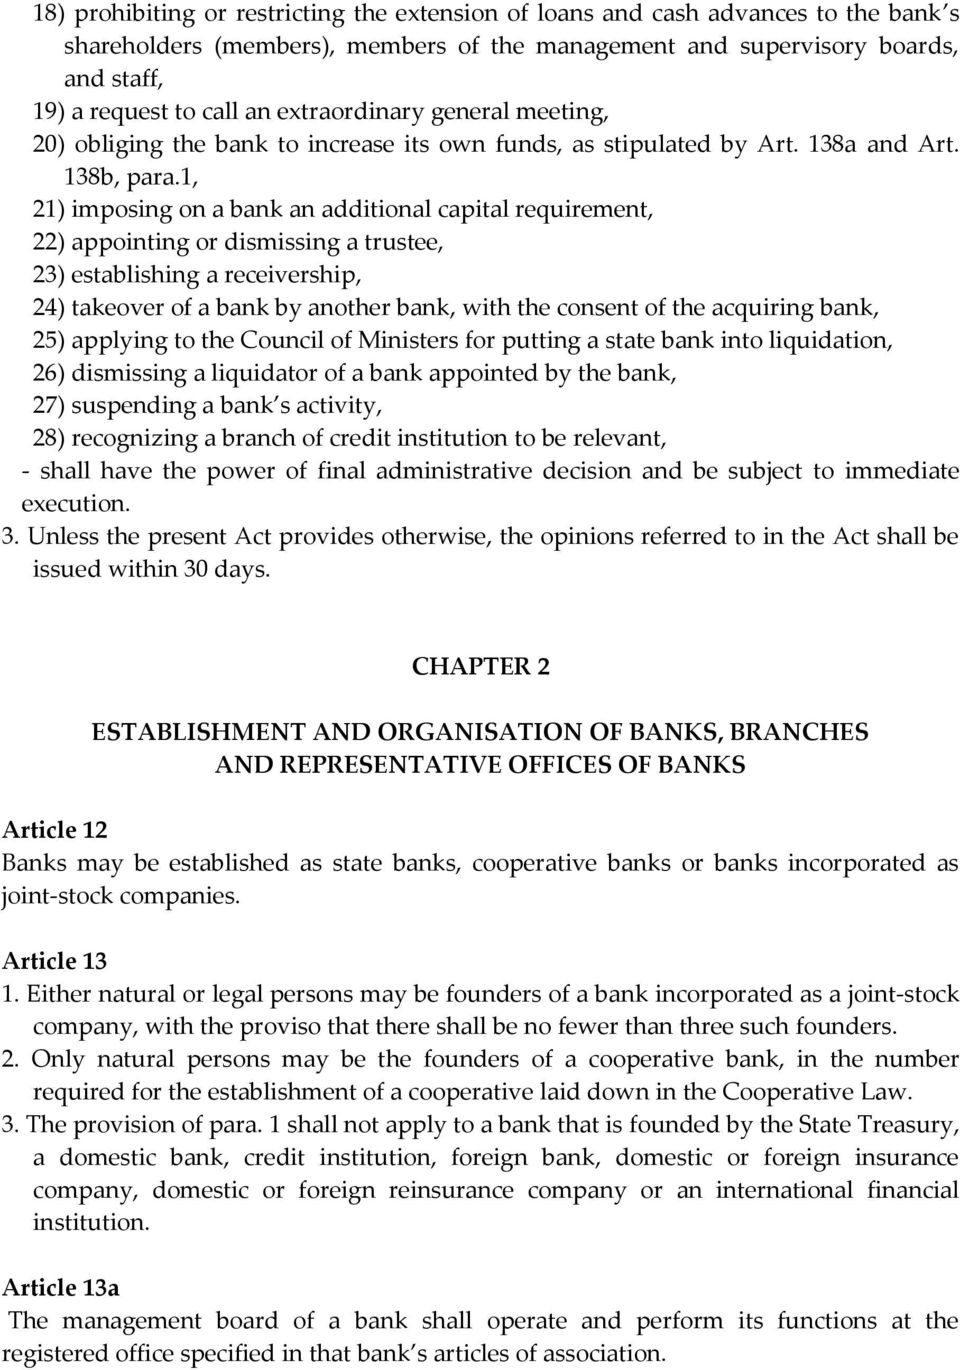 1, 21) imposing on a bank an additional capital requirement, 22) appointing or dismissing a trustee, 23) establishing a receivership, 24) takeover of a bank by another bank, with the consent of the